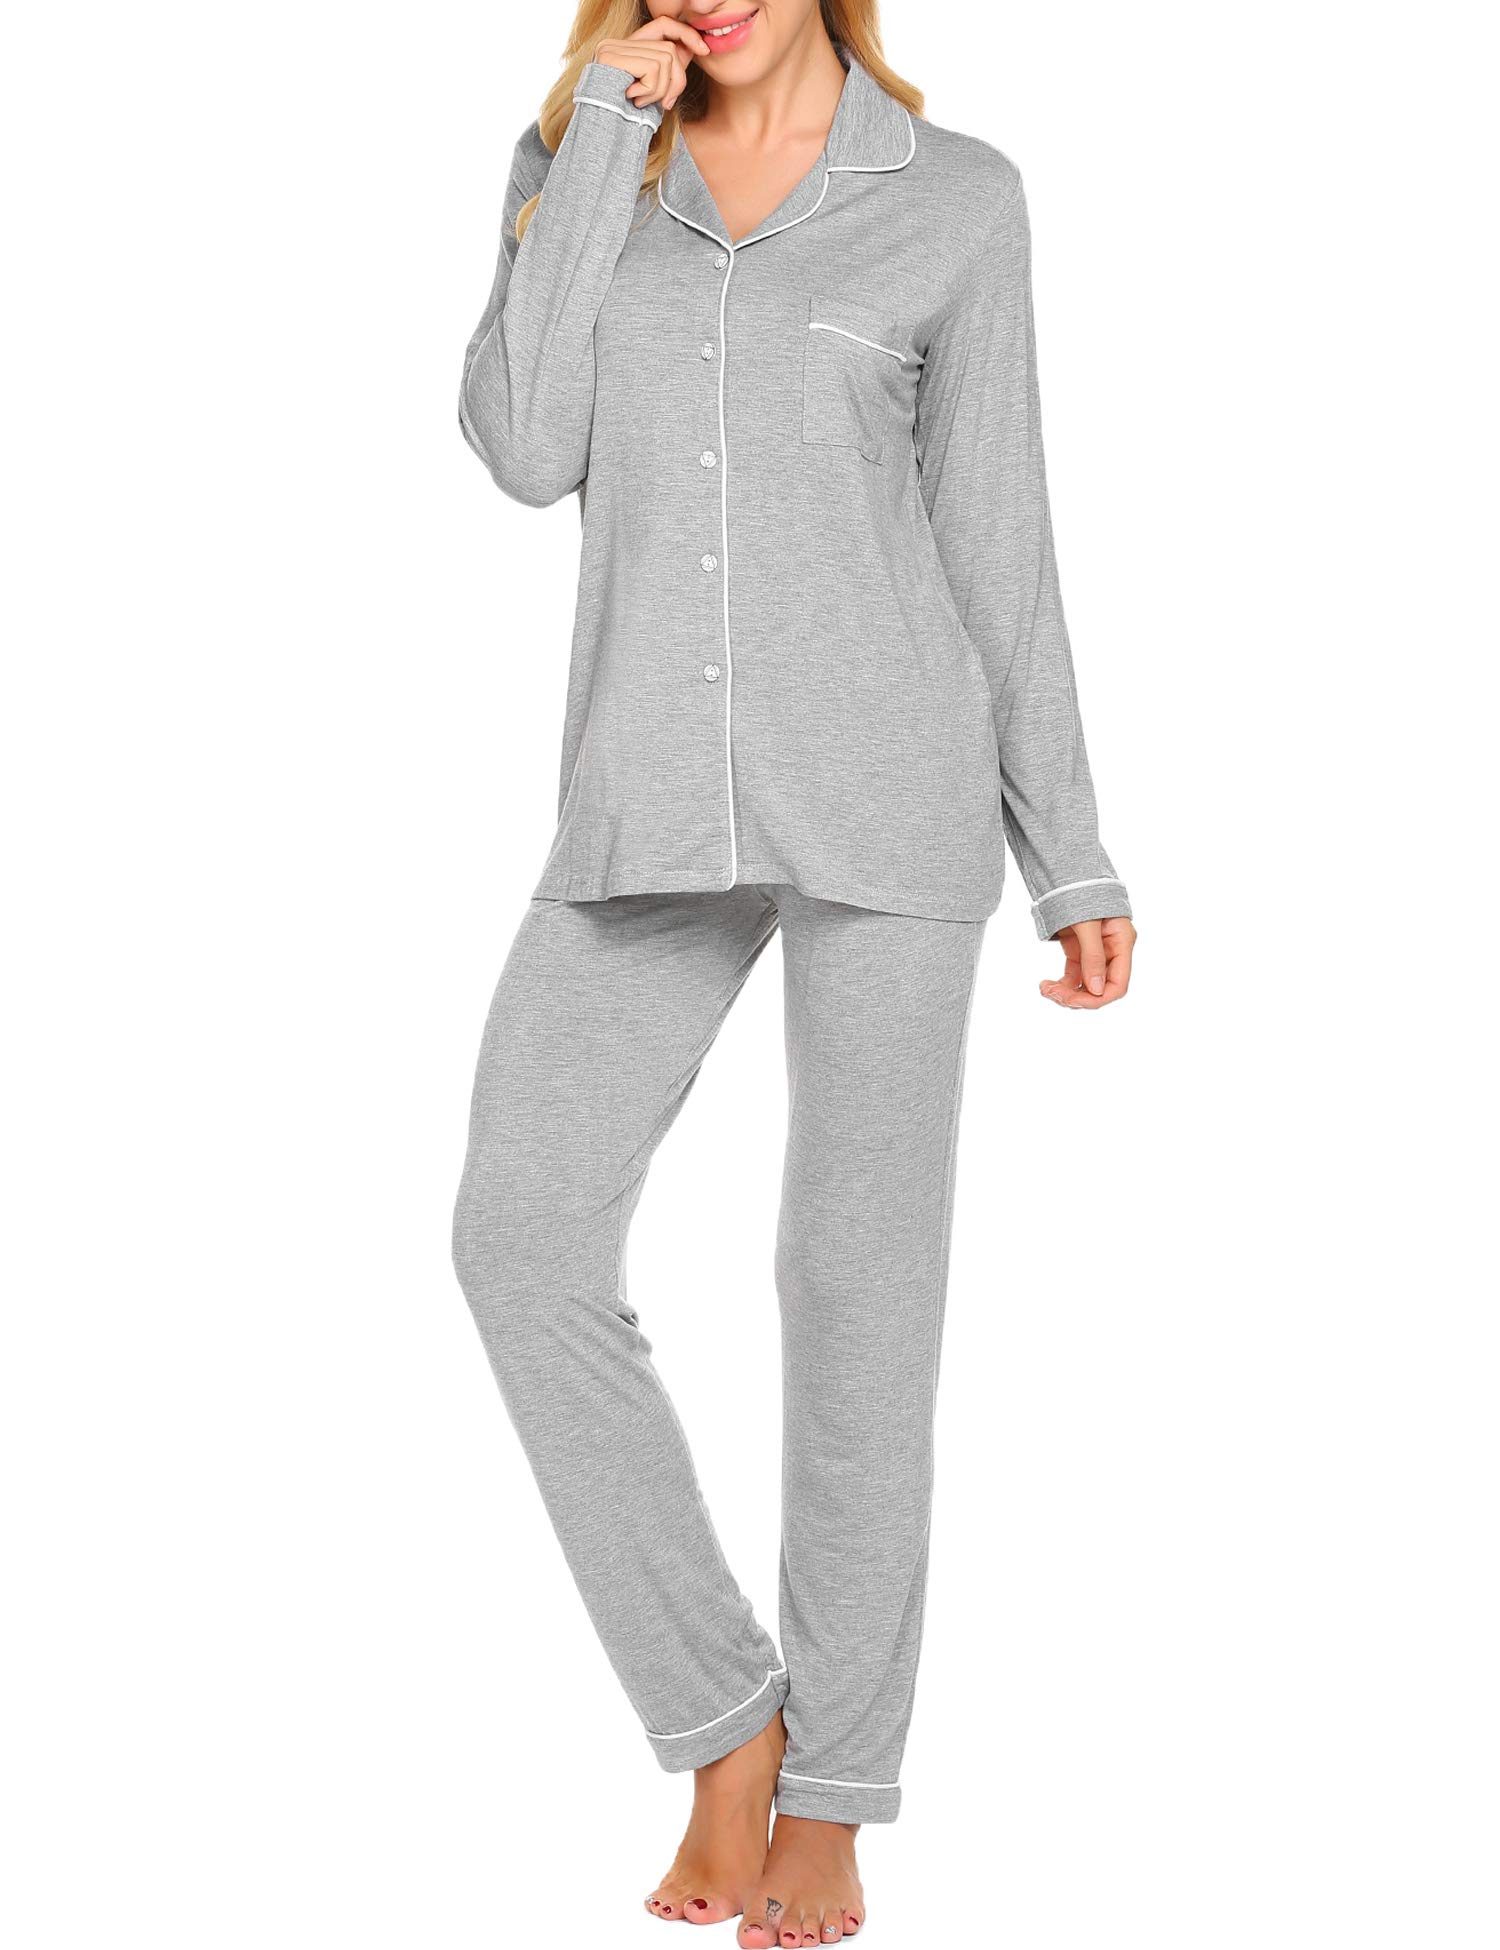 Ekouaer Pajama Set Womens Soft Sleepwear Long Sleeve Pjs Top Long Lounge Pants,Grey,Small